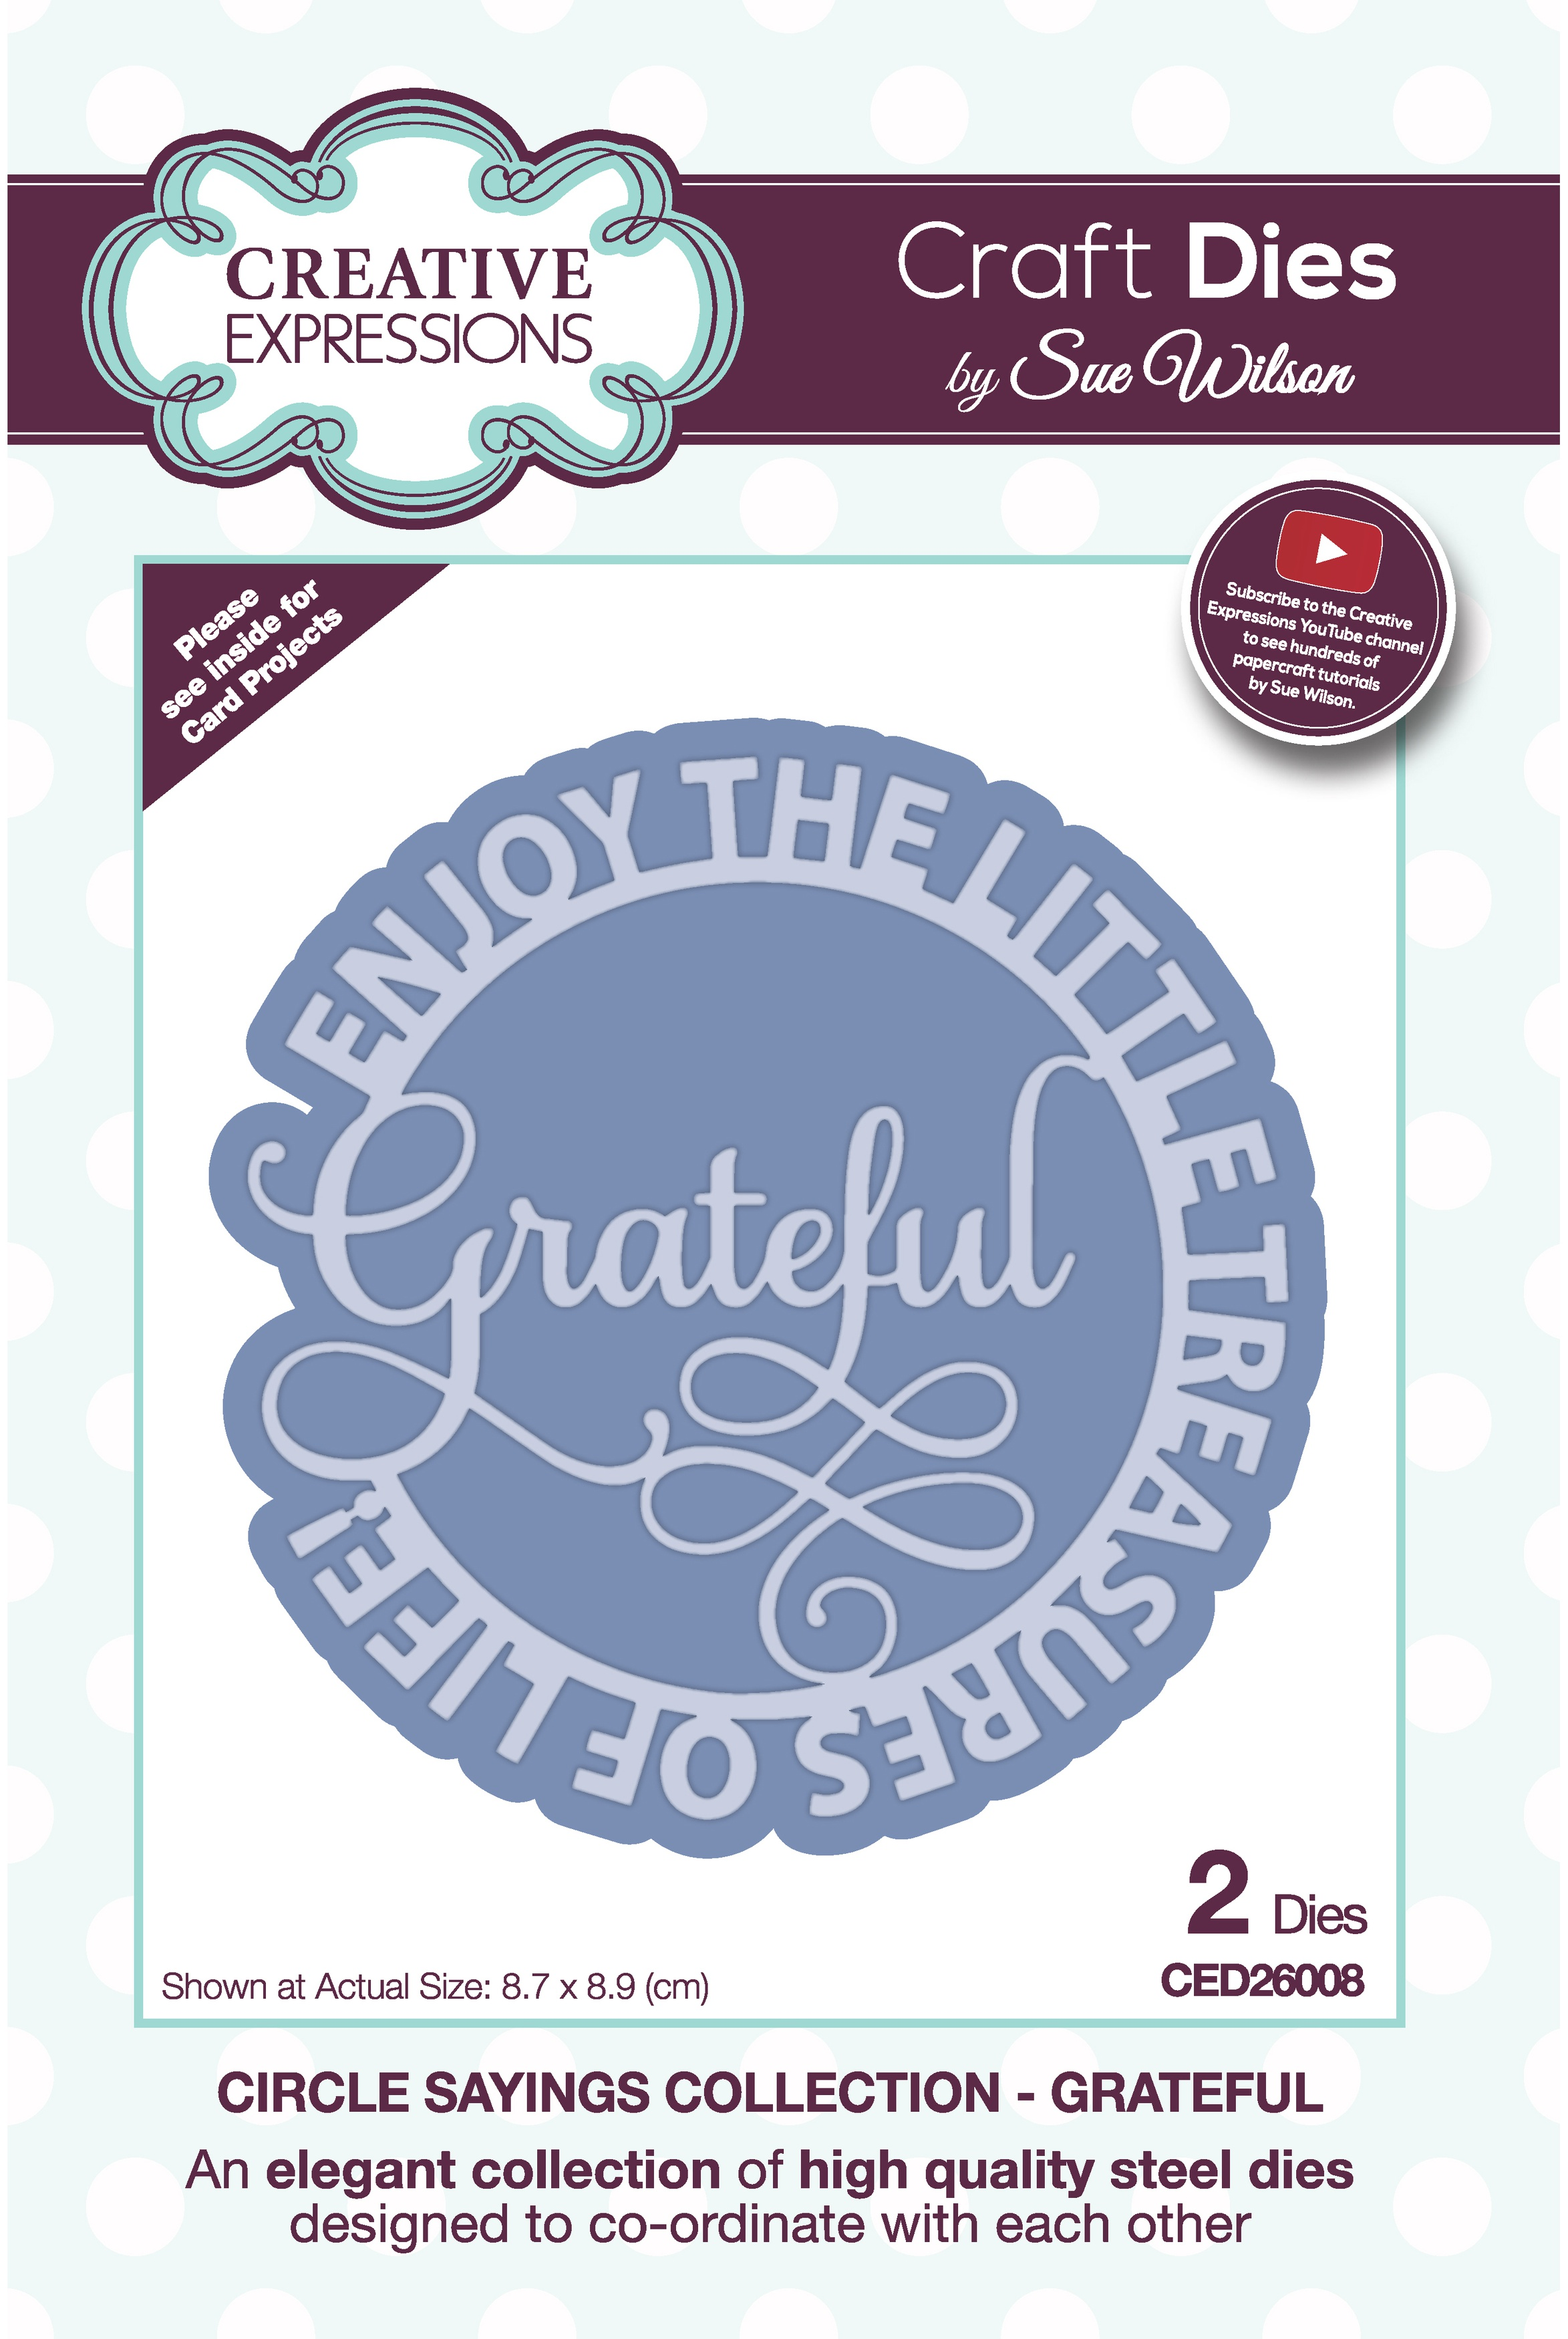 Creative Expressions Craft Dies By Sue Wilson-Circle Sayings- Grateful